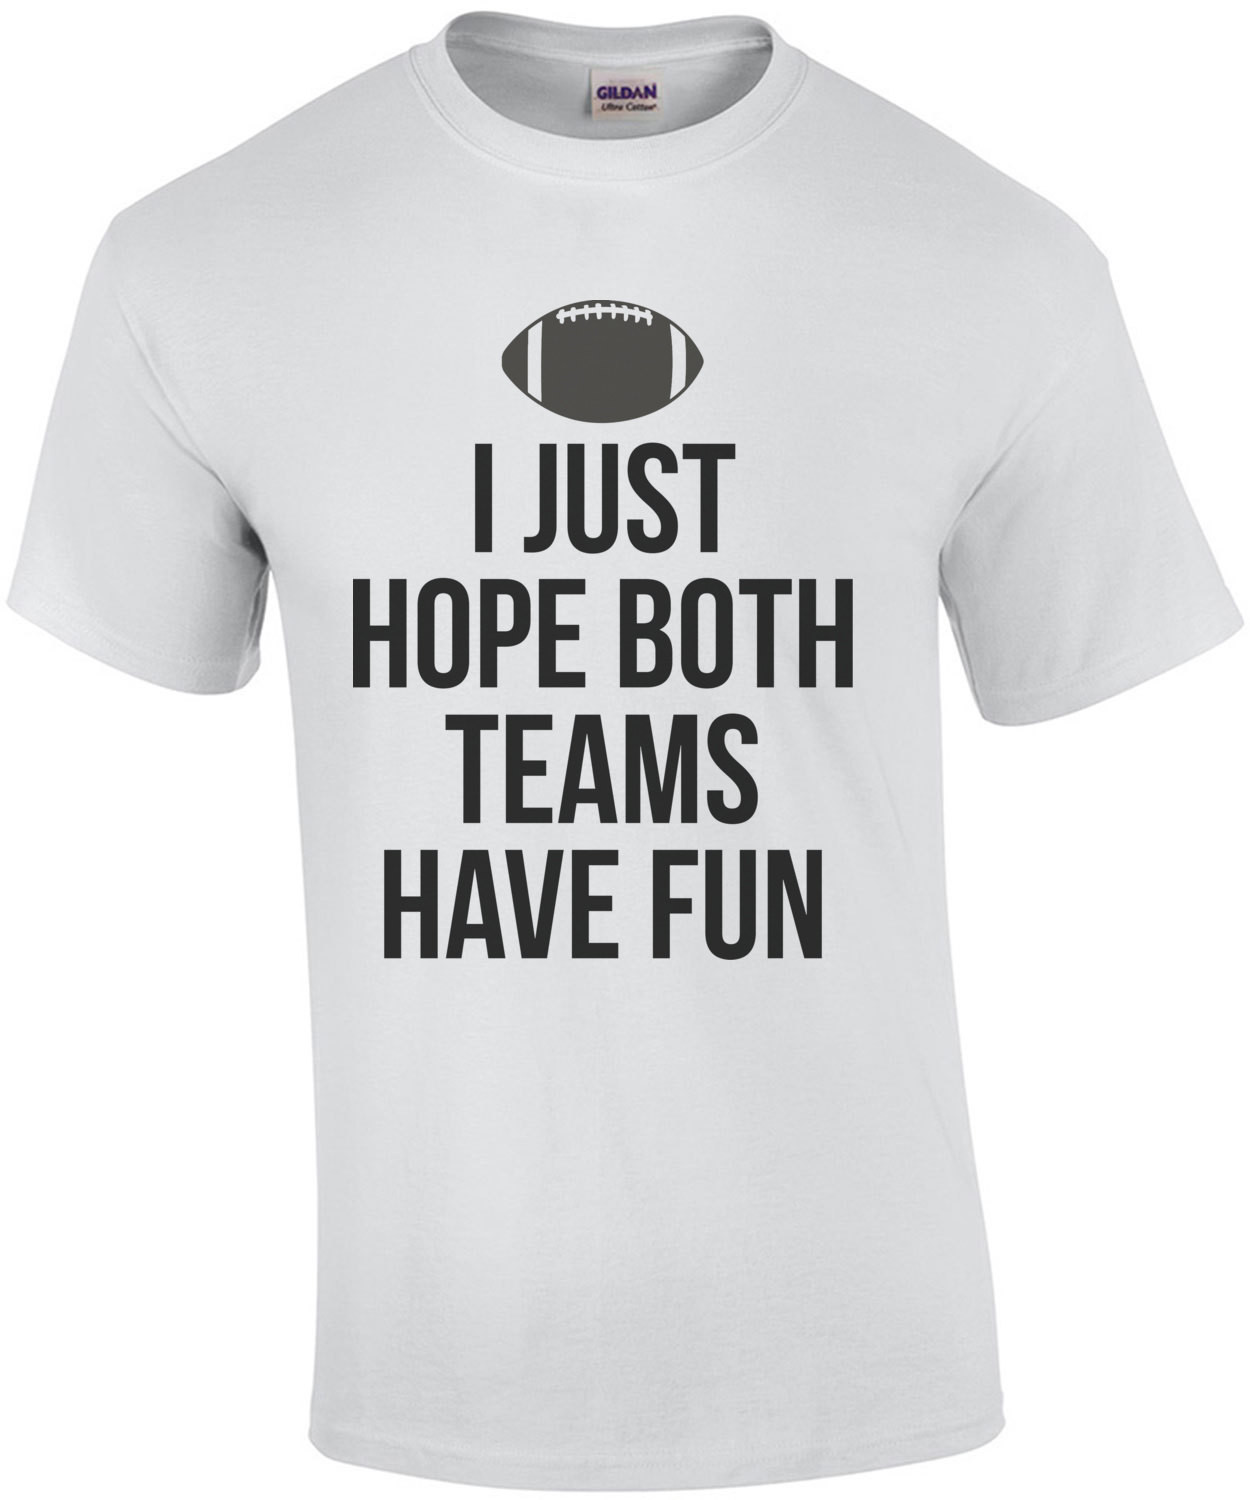 I Just Hope Both Teams Have Fun Football Shirt